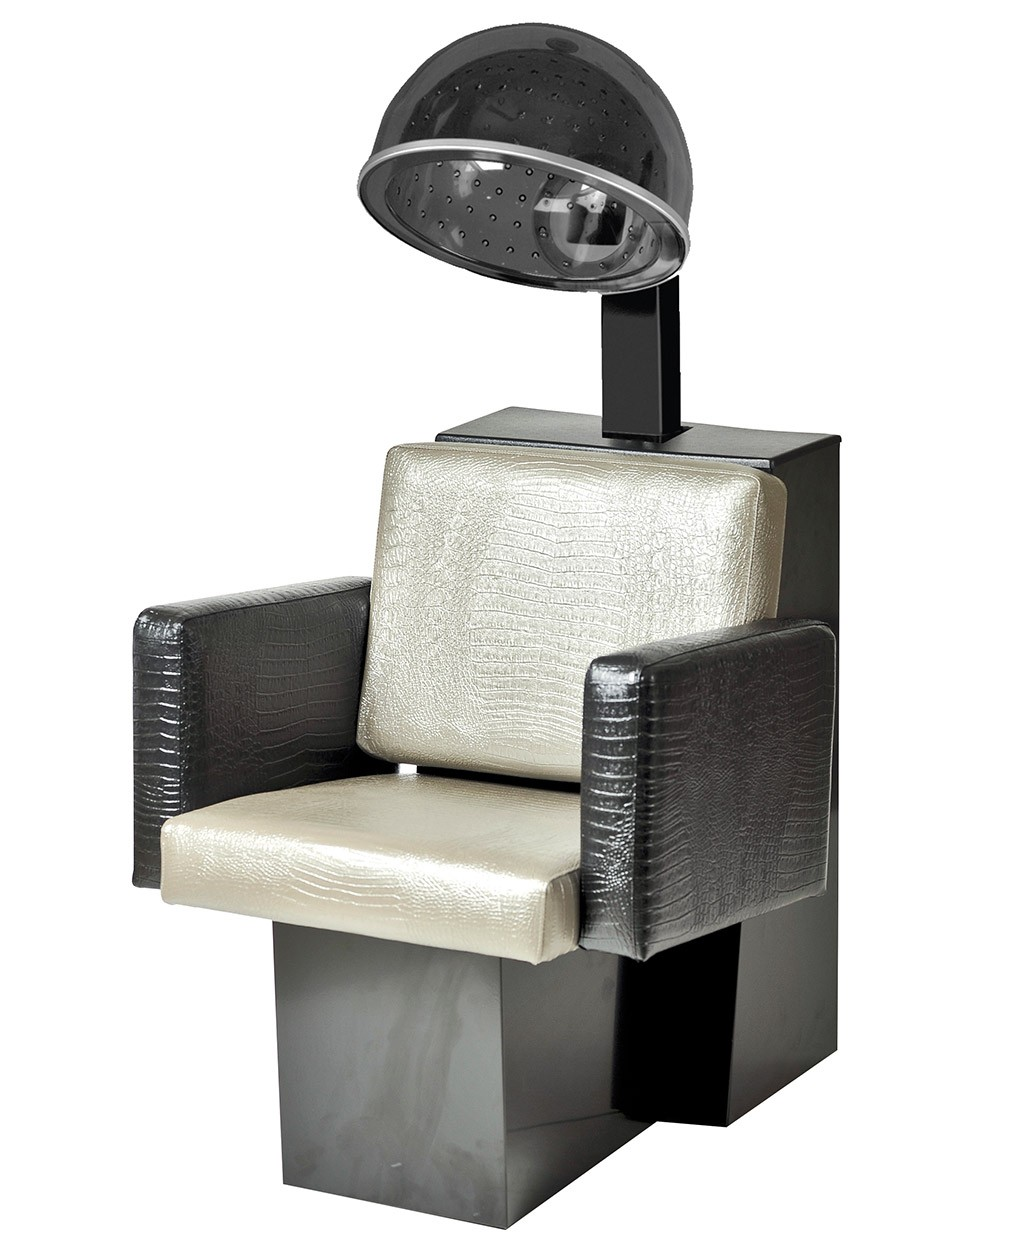 Pibbs 3469 Cosmo Dryer Chair